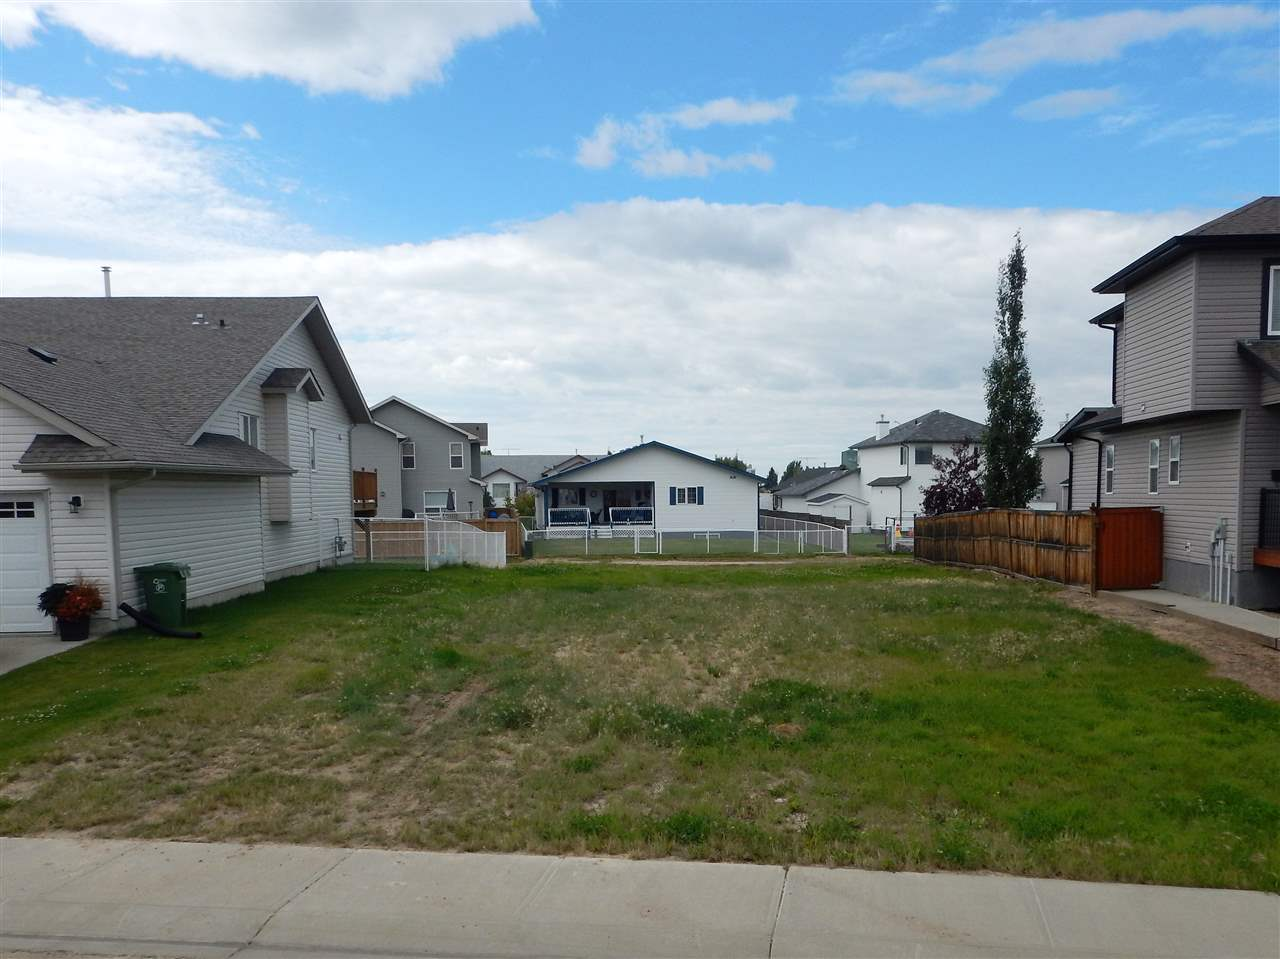 Build your dream home on the best remaining vacant lot in Aspendale. Prime private location in a cul-de-sac and has a no exit back alley.